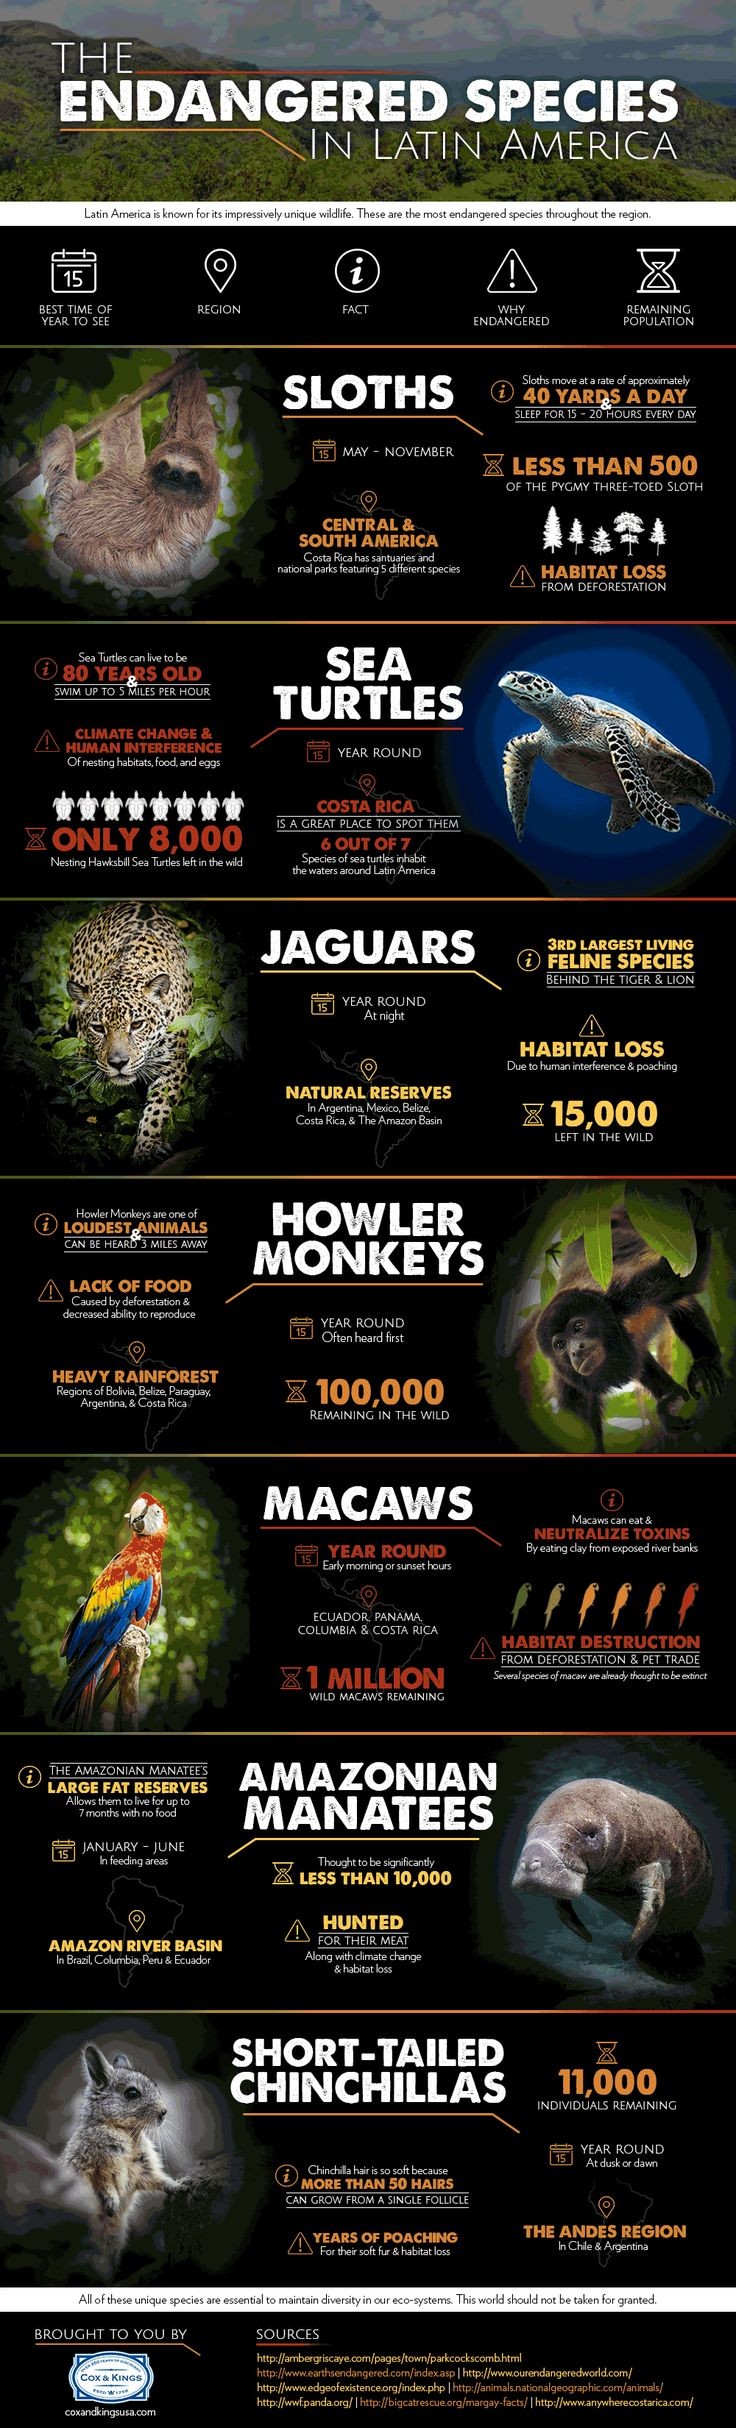 The Endangered Species in Latin America #Infographic #Animals #America